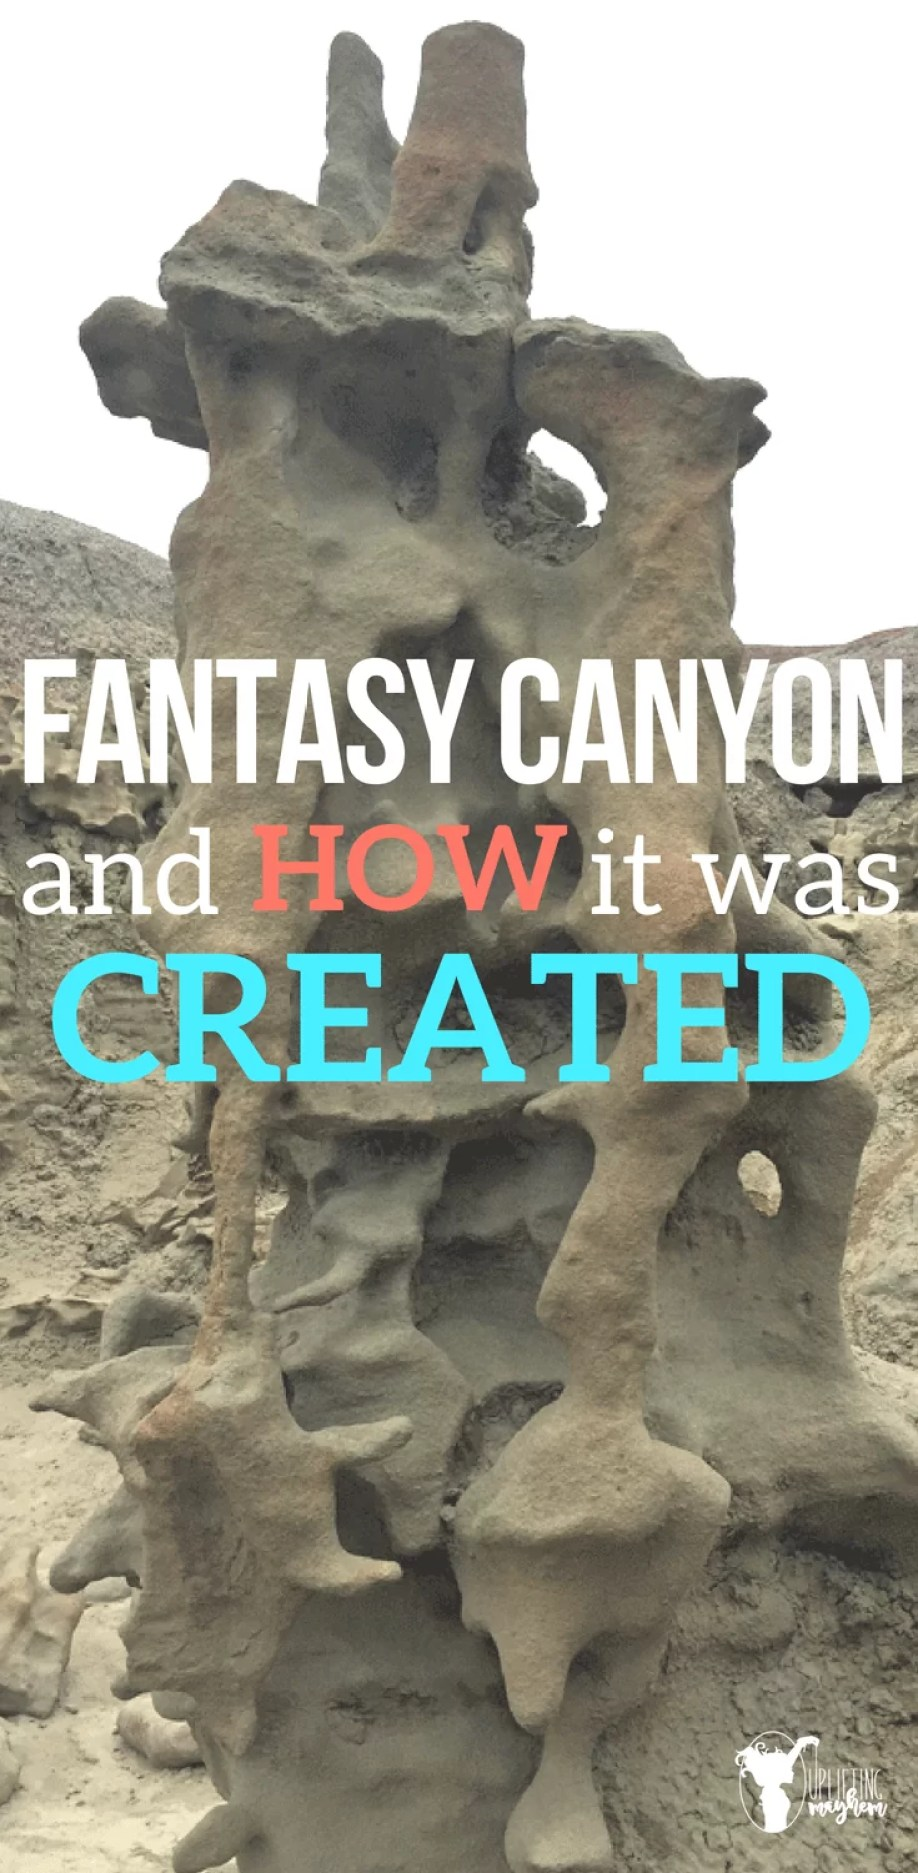 Fantasy Canyon is such a fun place to explore. Learn how it was created to make these crazy rock figures.